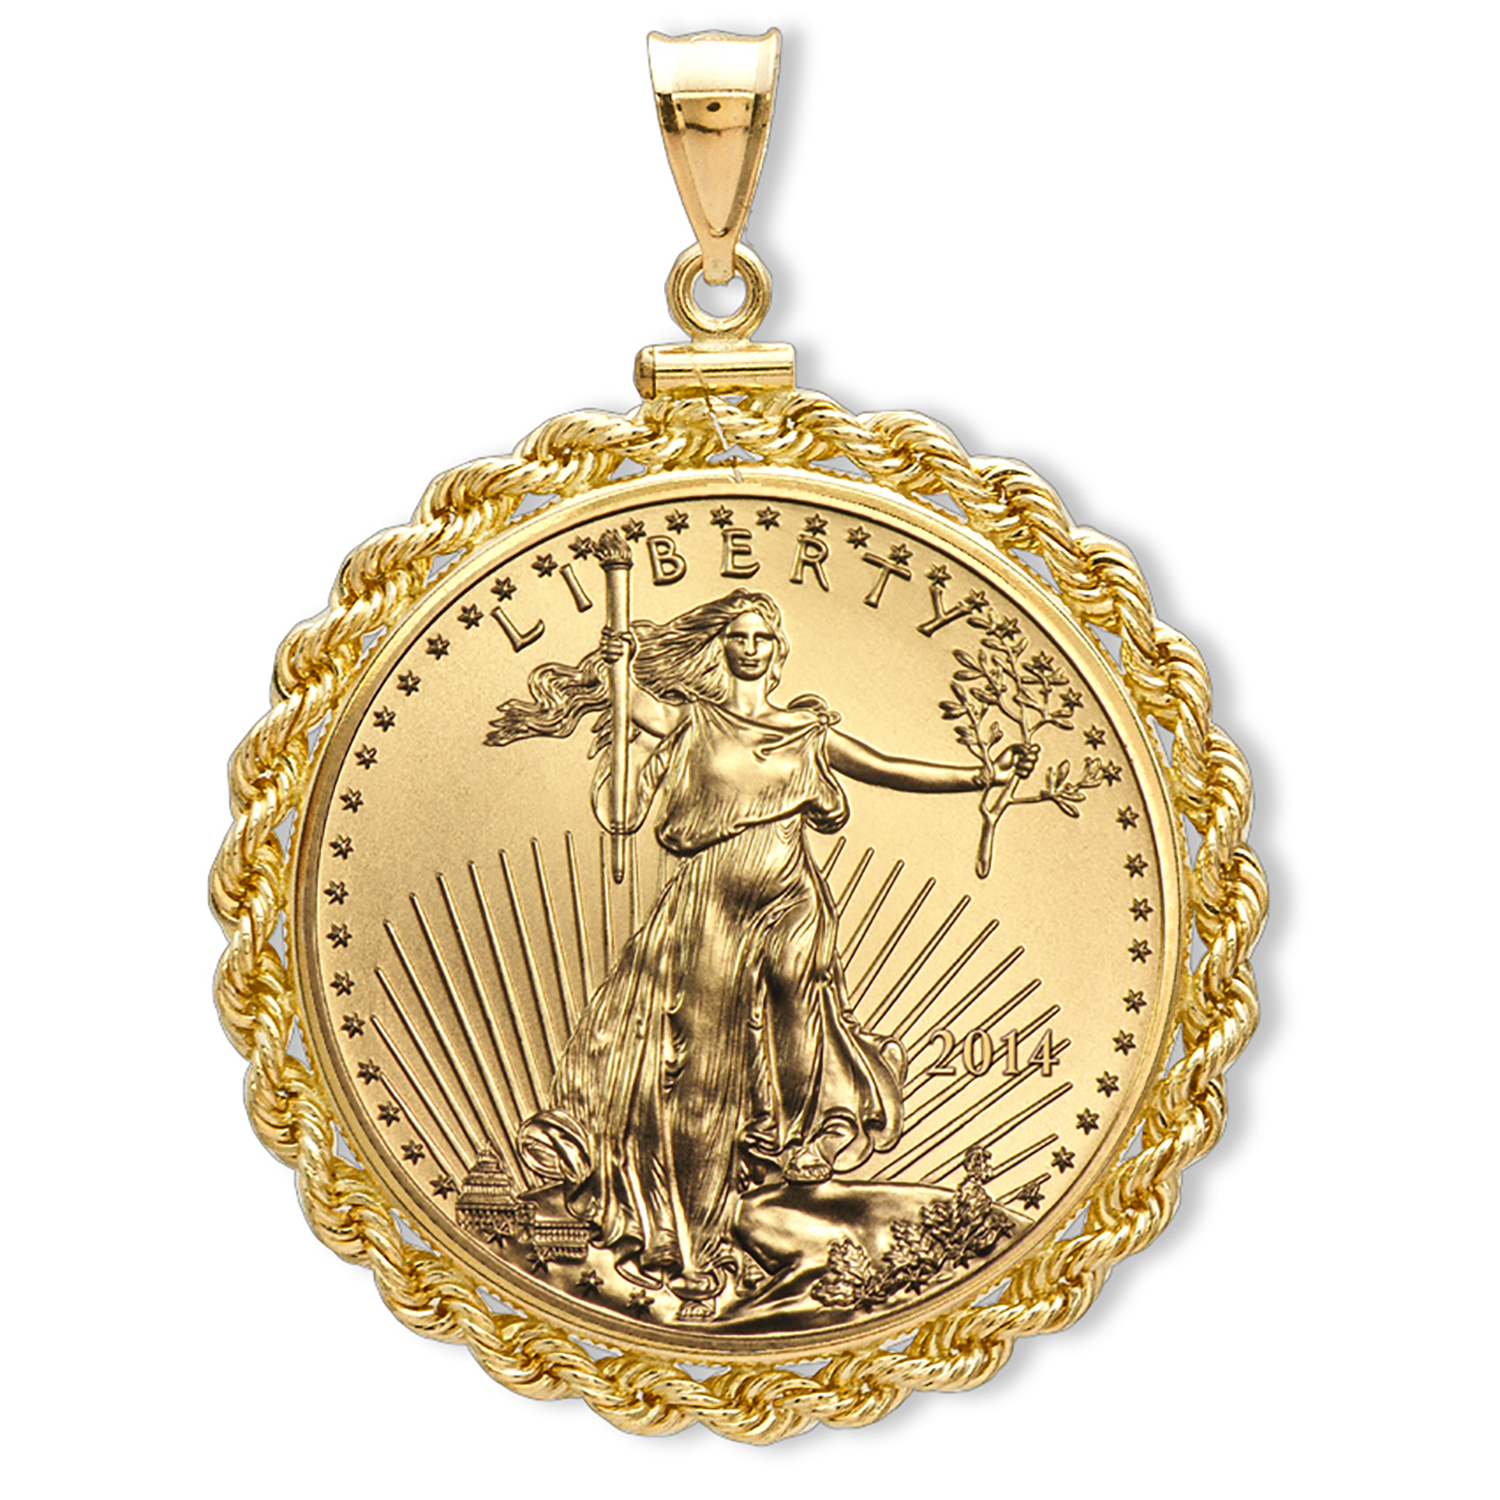 2014 1/10 oz Gold Eagle Pendant (Rope-ScrewTop Bezel)